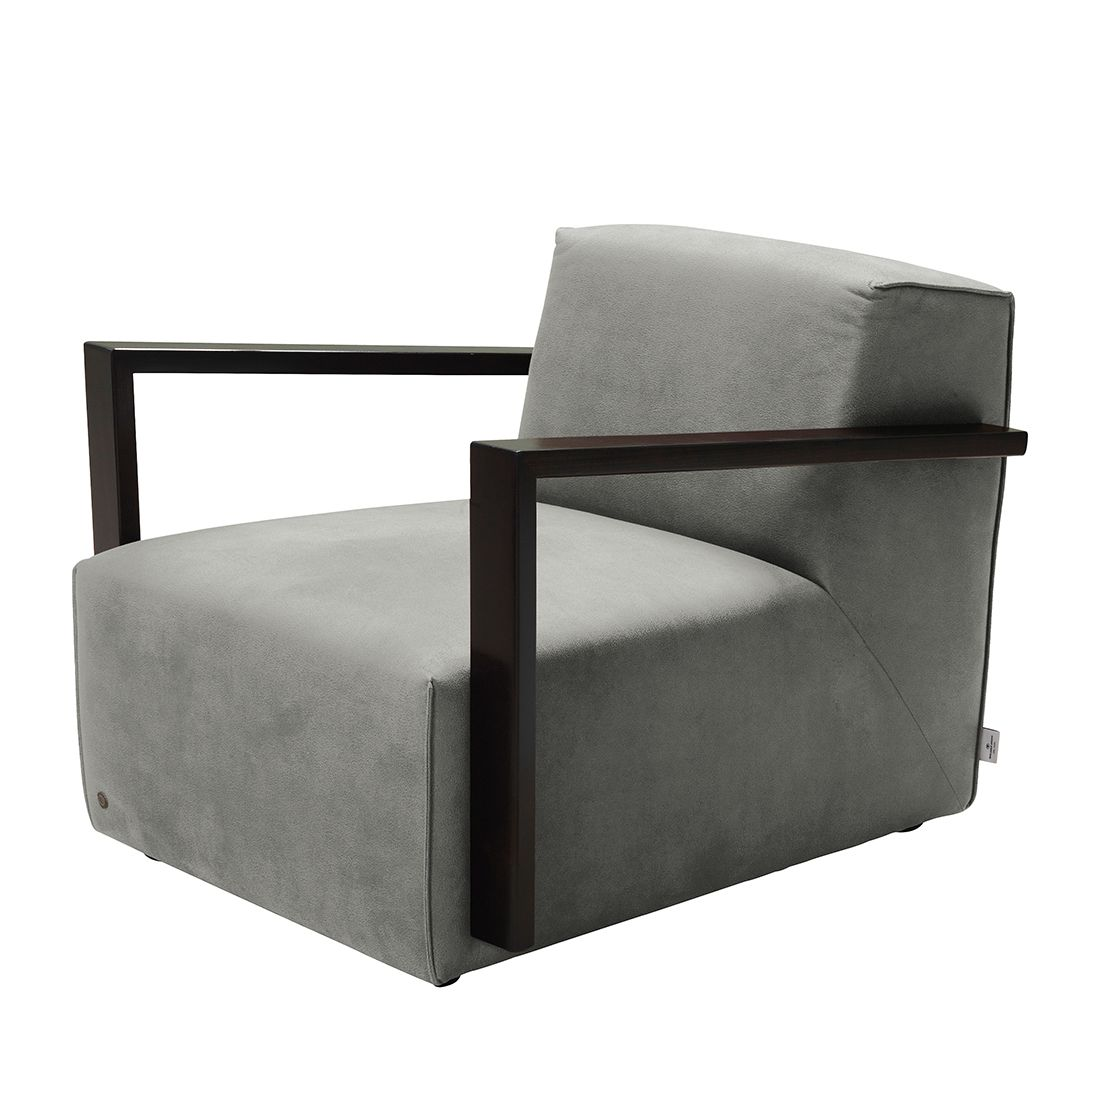 goedkoop Fauteuil Lazy antiekleren look Zonder hocker Grijs Tom Tailor